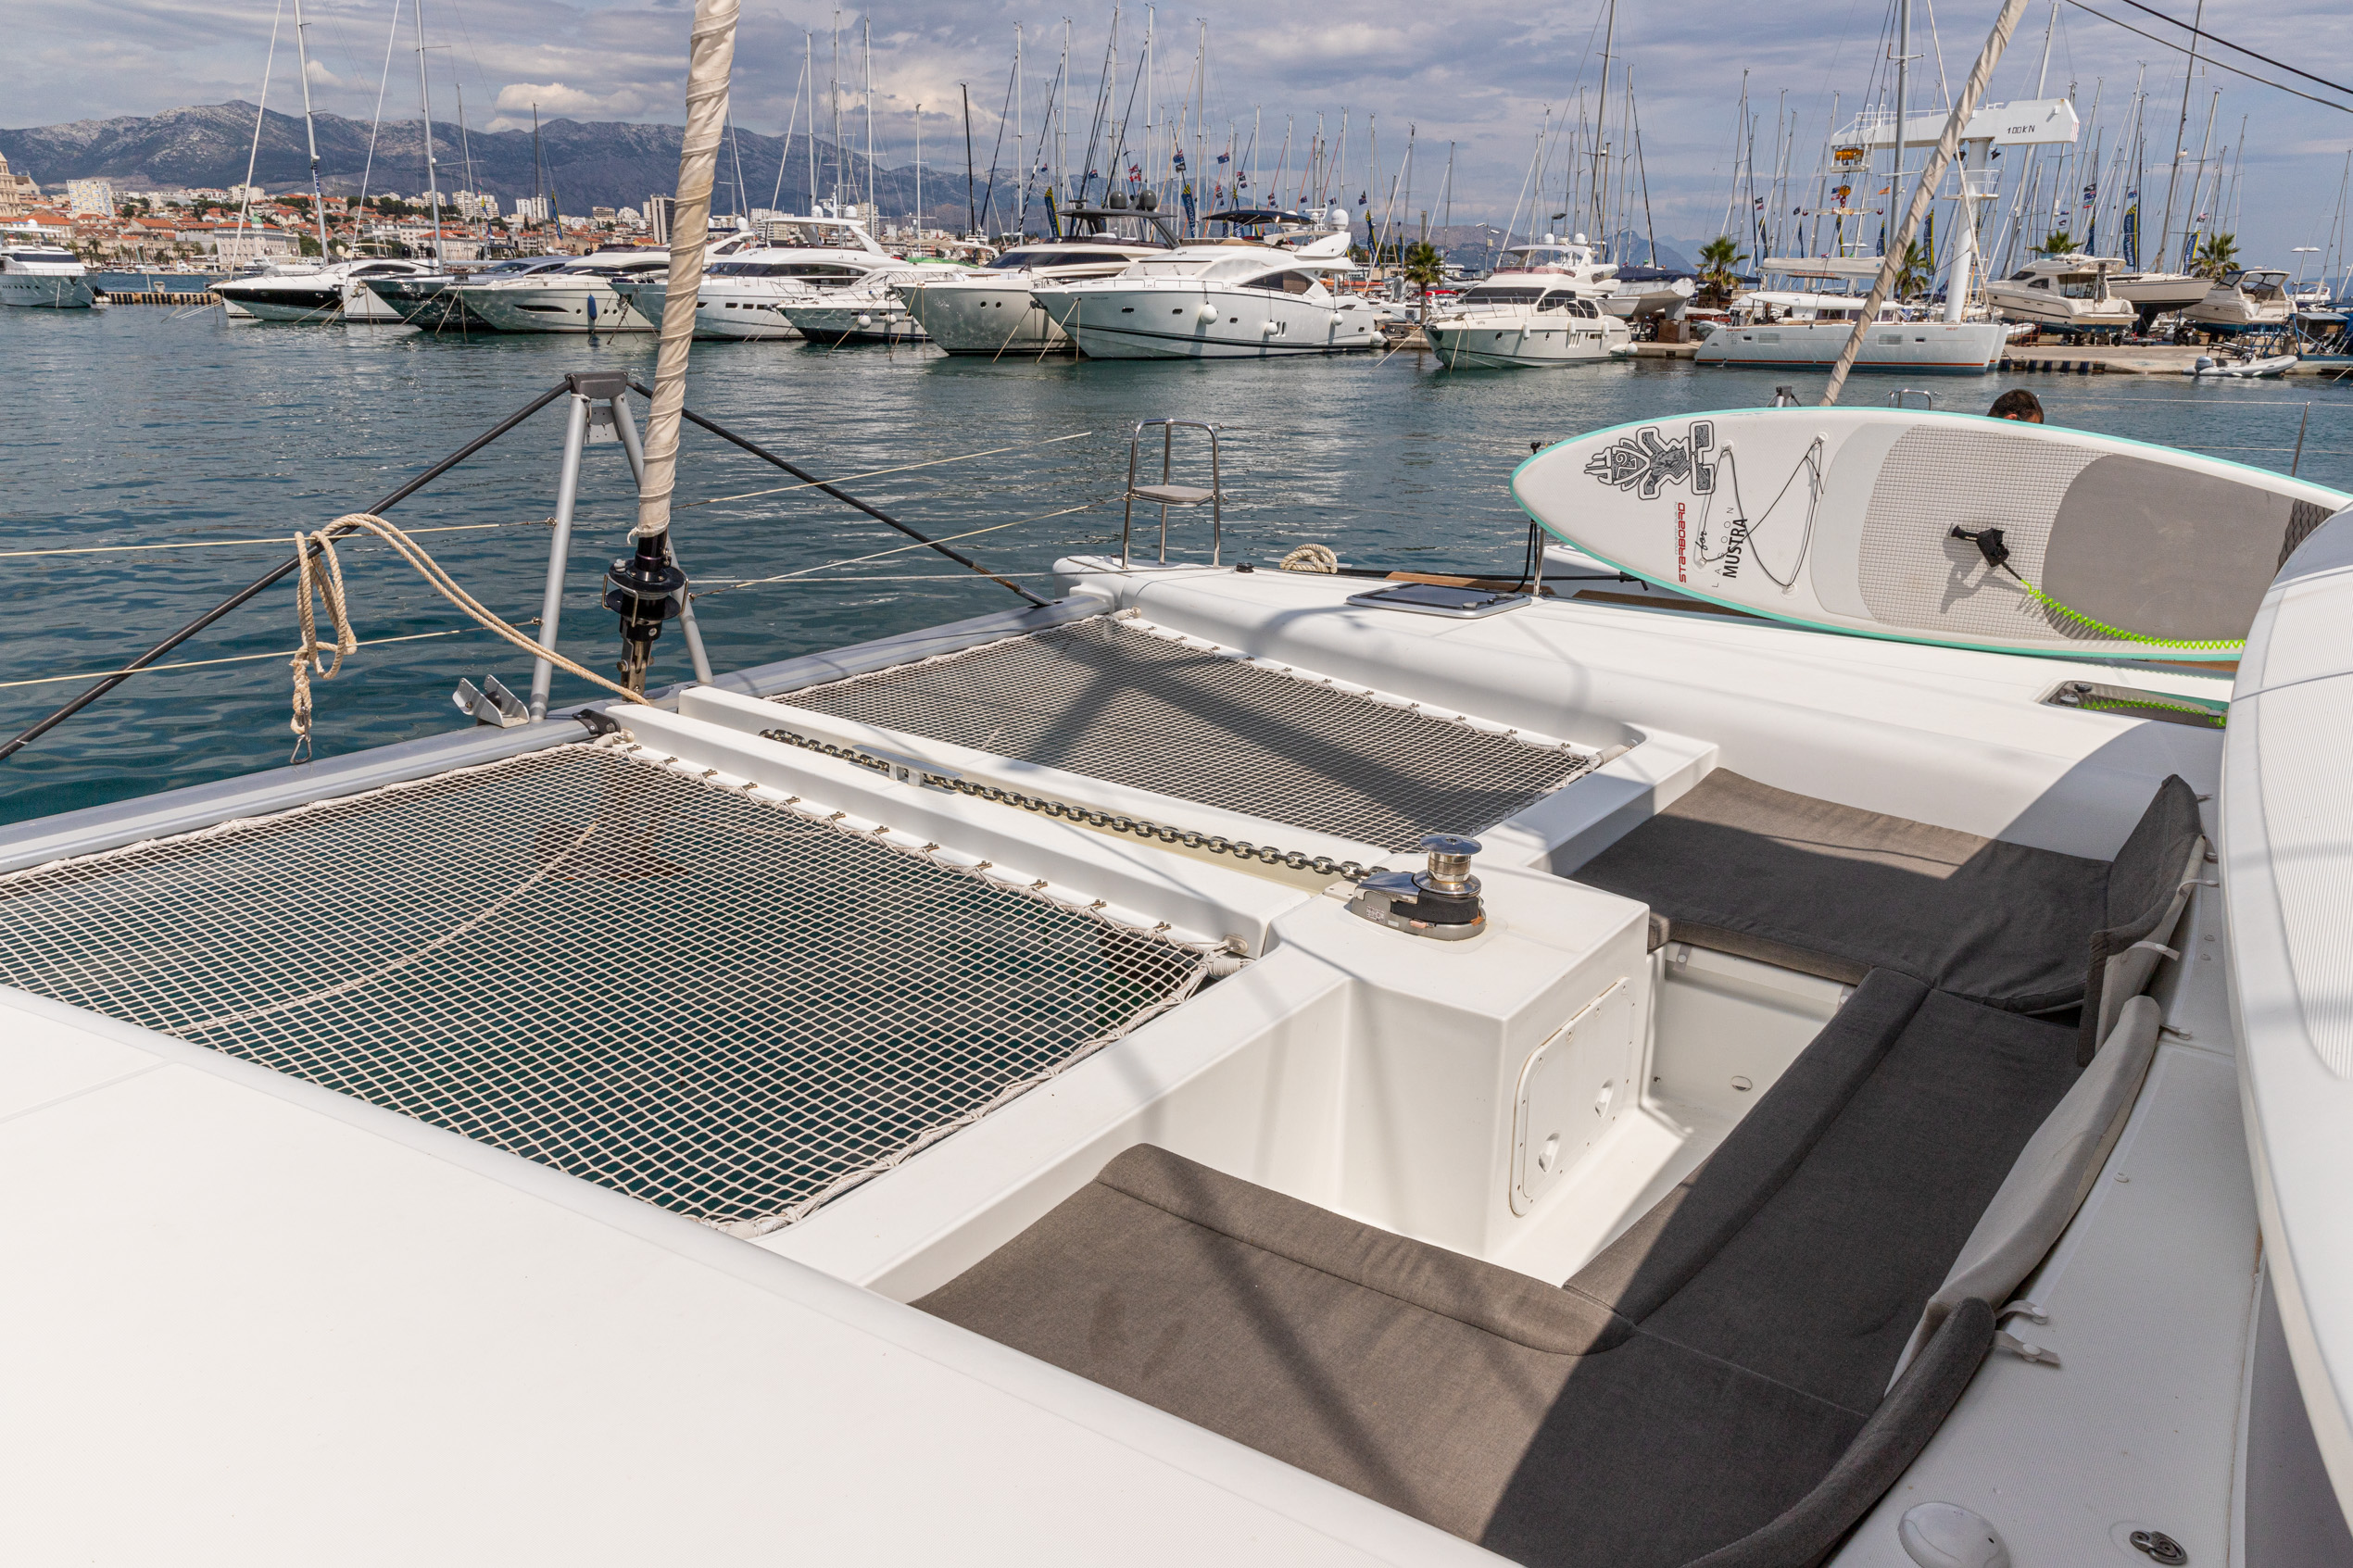 Lagoon 450 (2014) equipped with generator, A/C (sa (MUSTRA I)  - 6